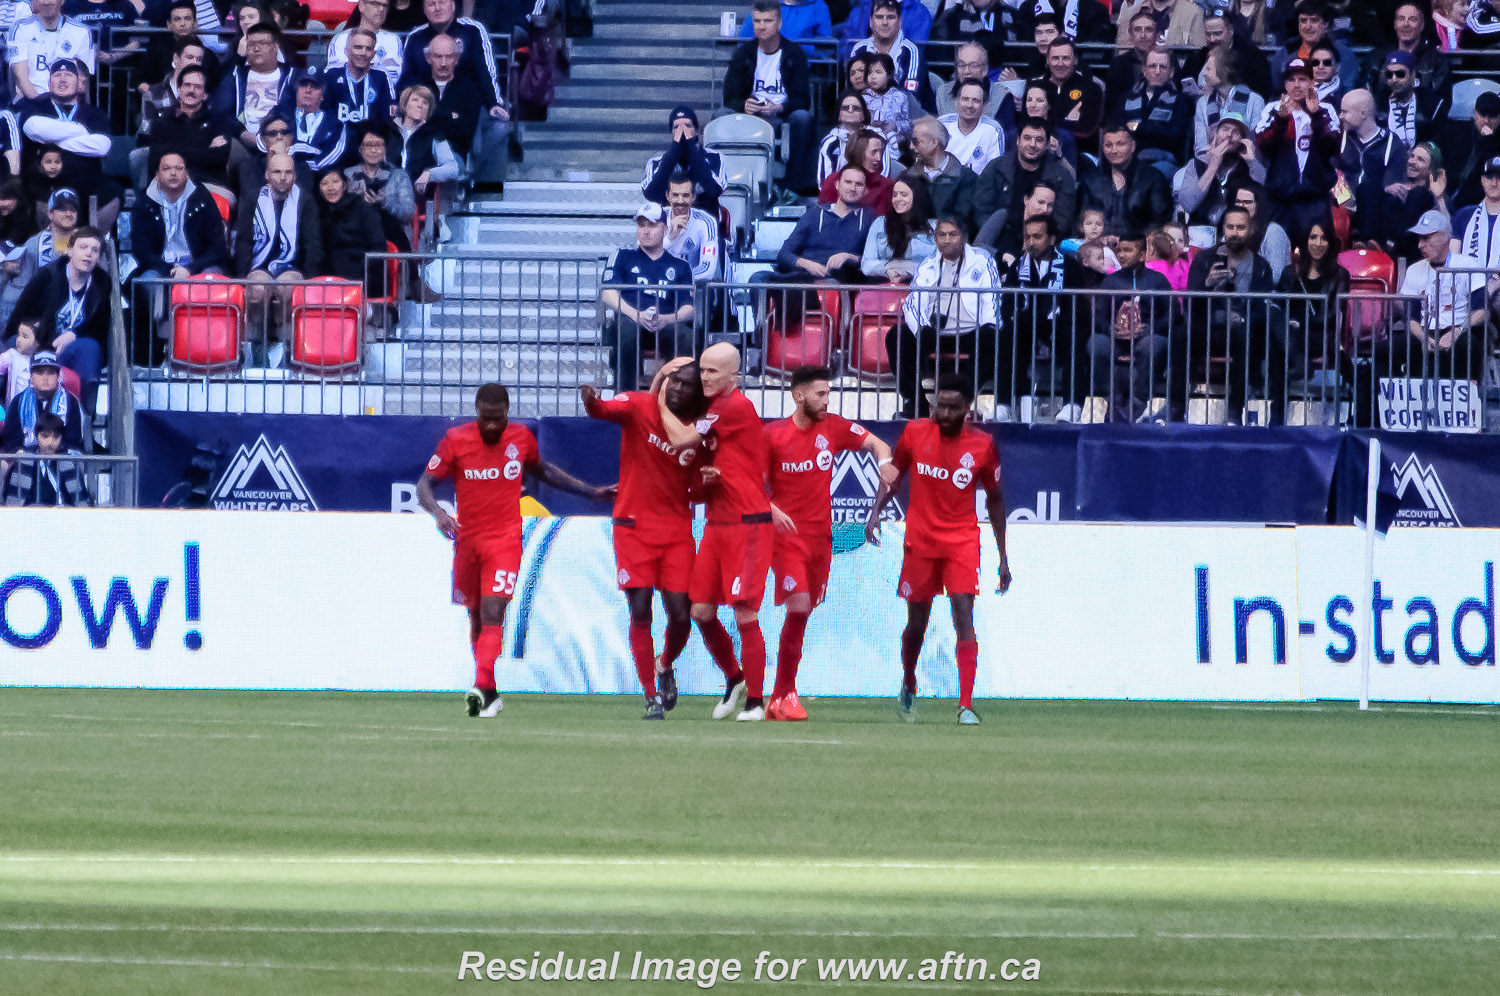 Whitecas v TFC - The Story In Pictures (11)